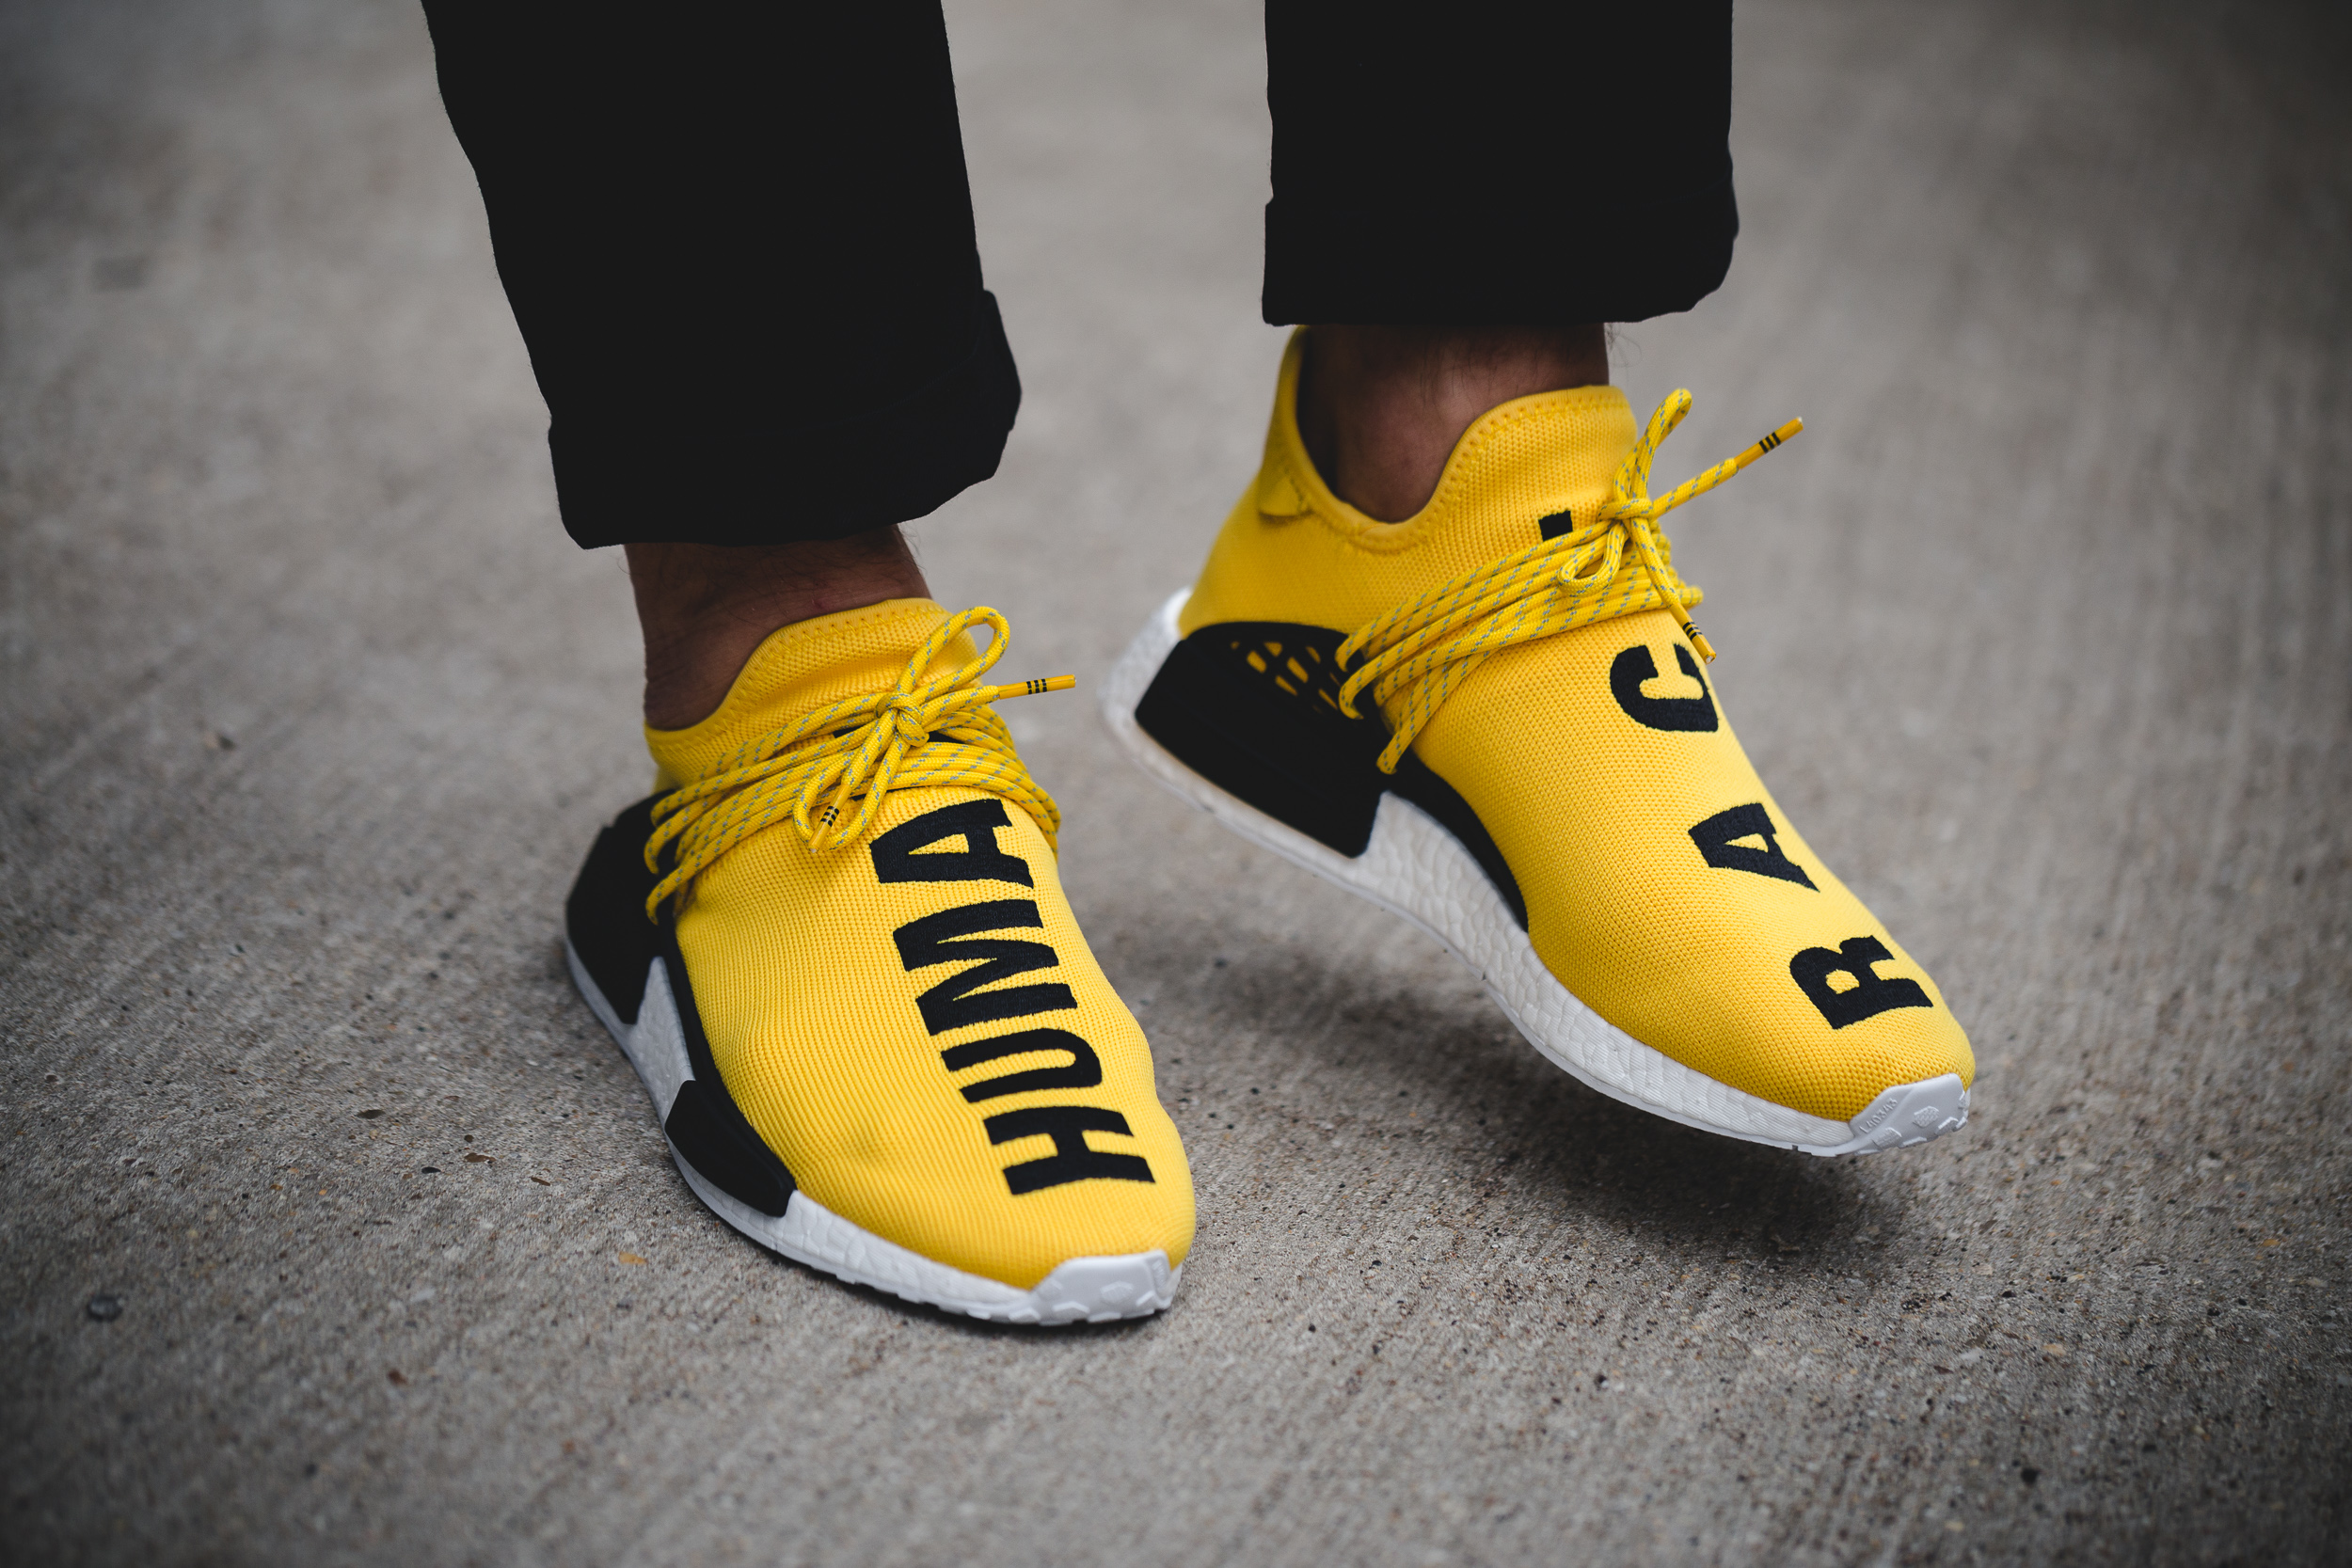 Adidas By Pharrell Williams Adidas x Pharrell Williams